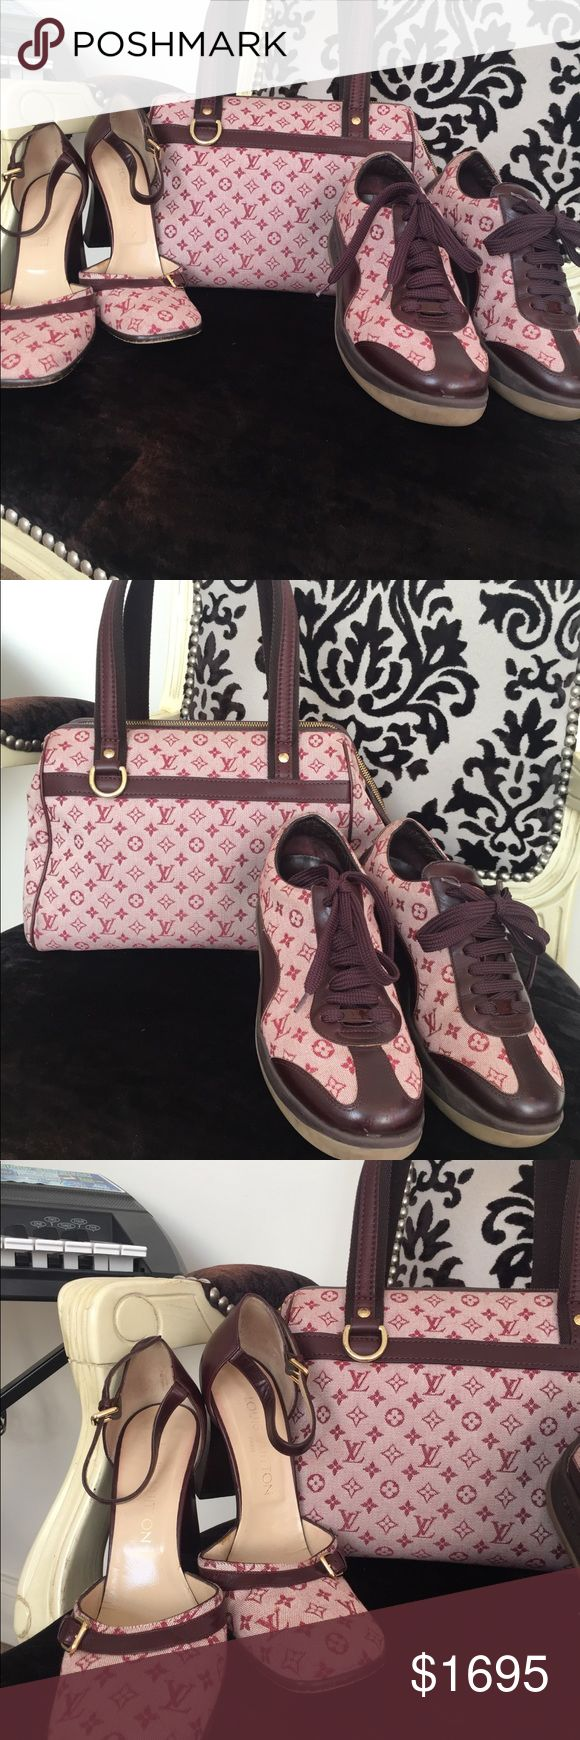 Bundle, Authentic Louis Vuitton handbag and shoes Today ONLY  Cranberry sneakers, Maryjane shoes. And handbag. Chic, stylish and a must have !!! All items are in excellent condition. I can lower the price a little if your interested !😀 Louis Vuitton Accessories